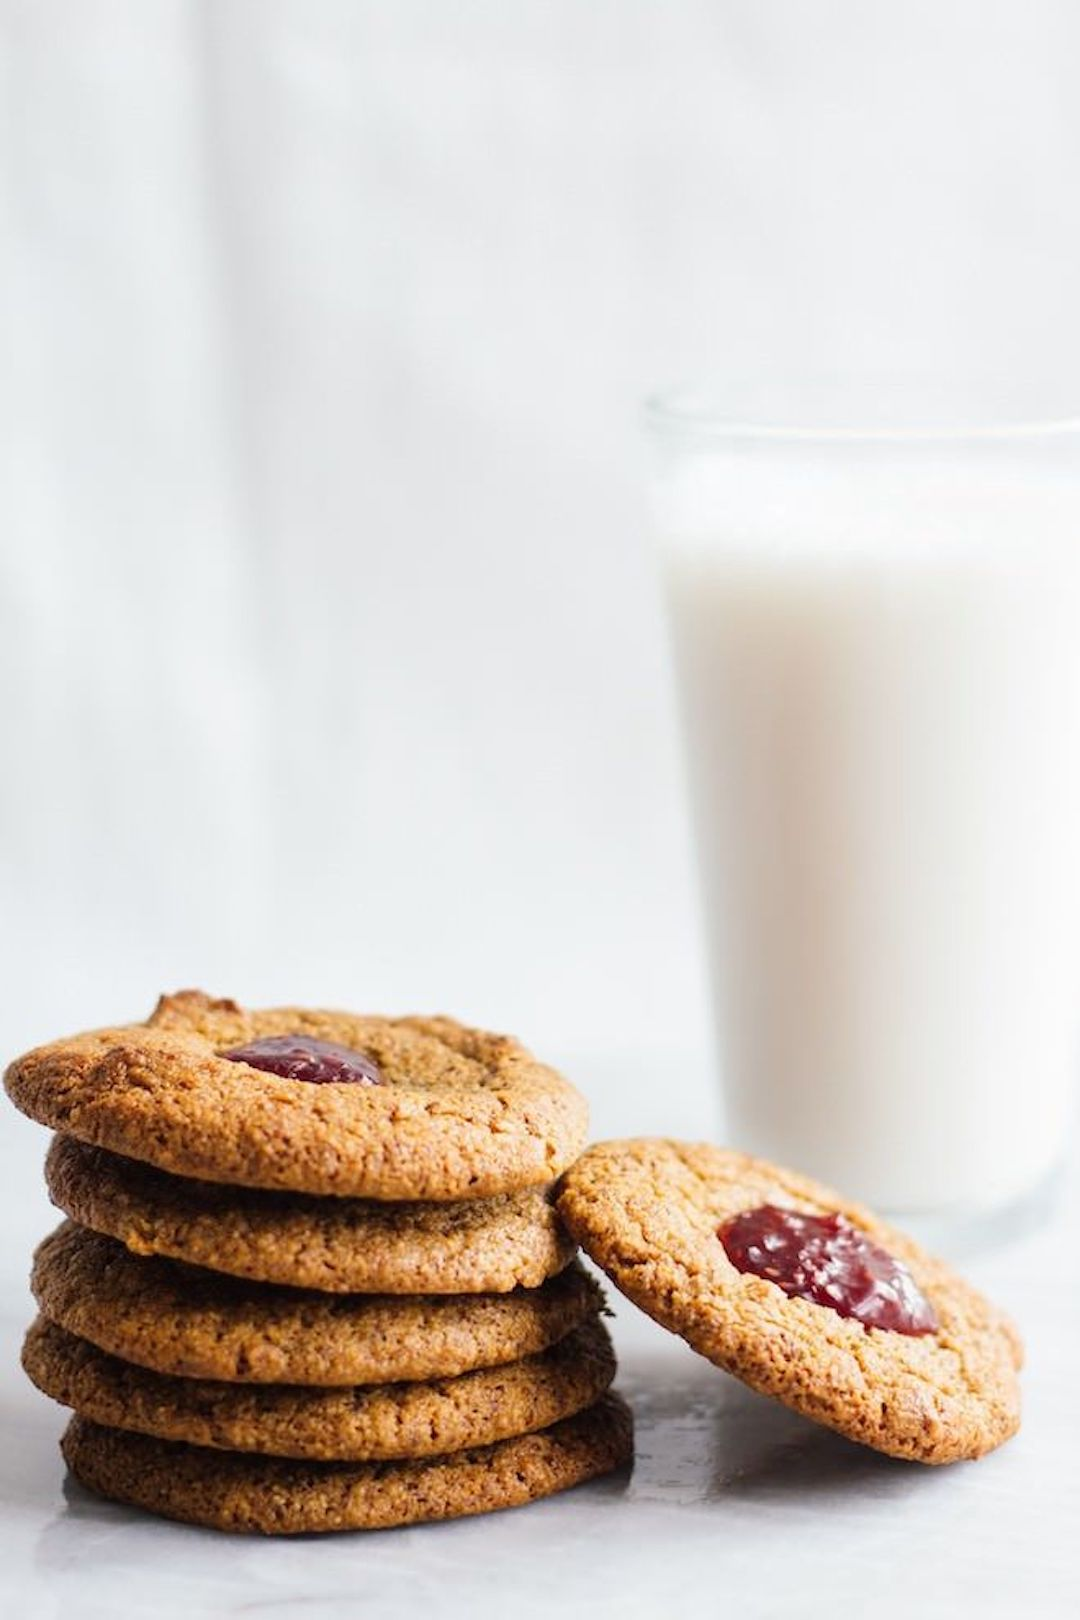 stacks of jam thumbprint cookies and a glass of milk